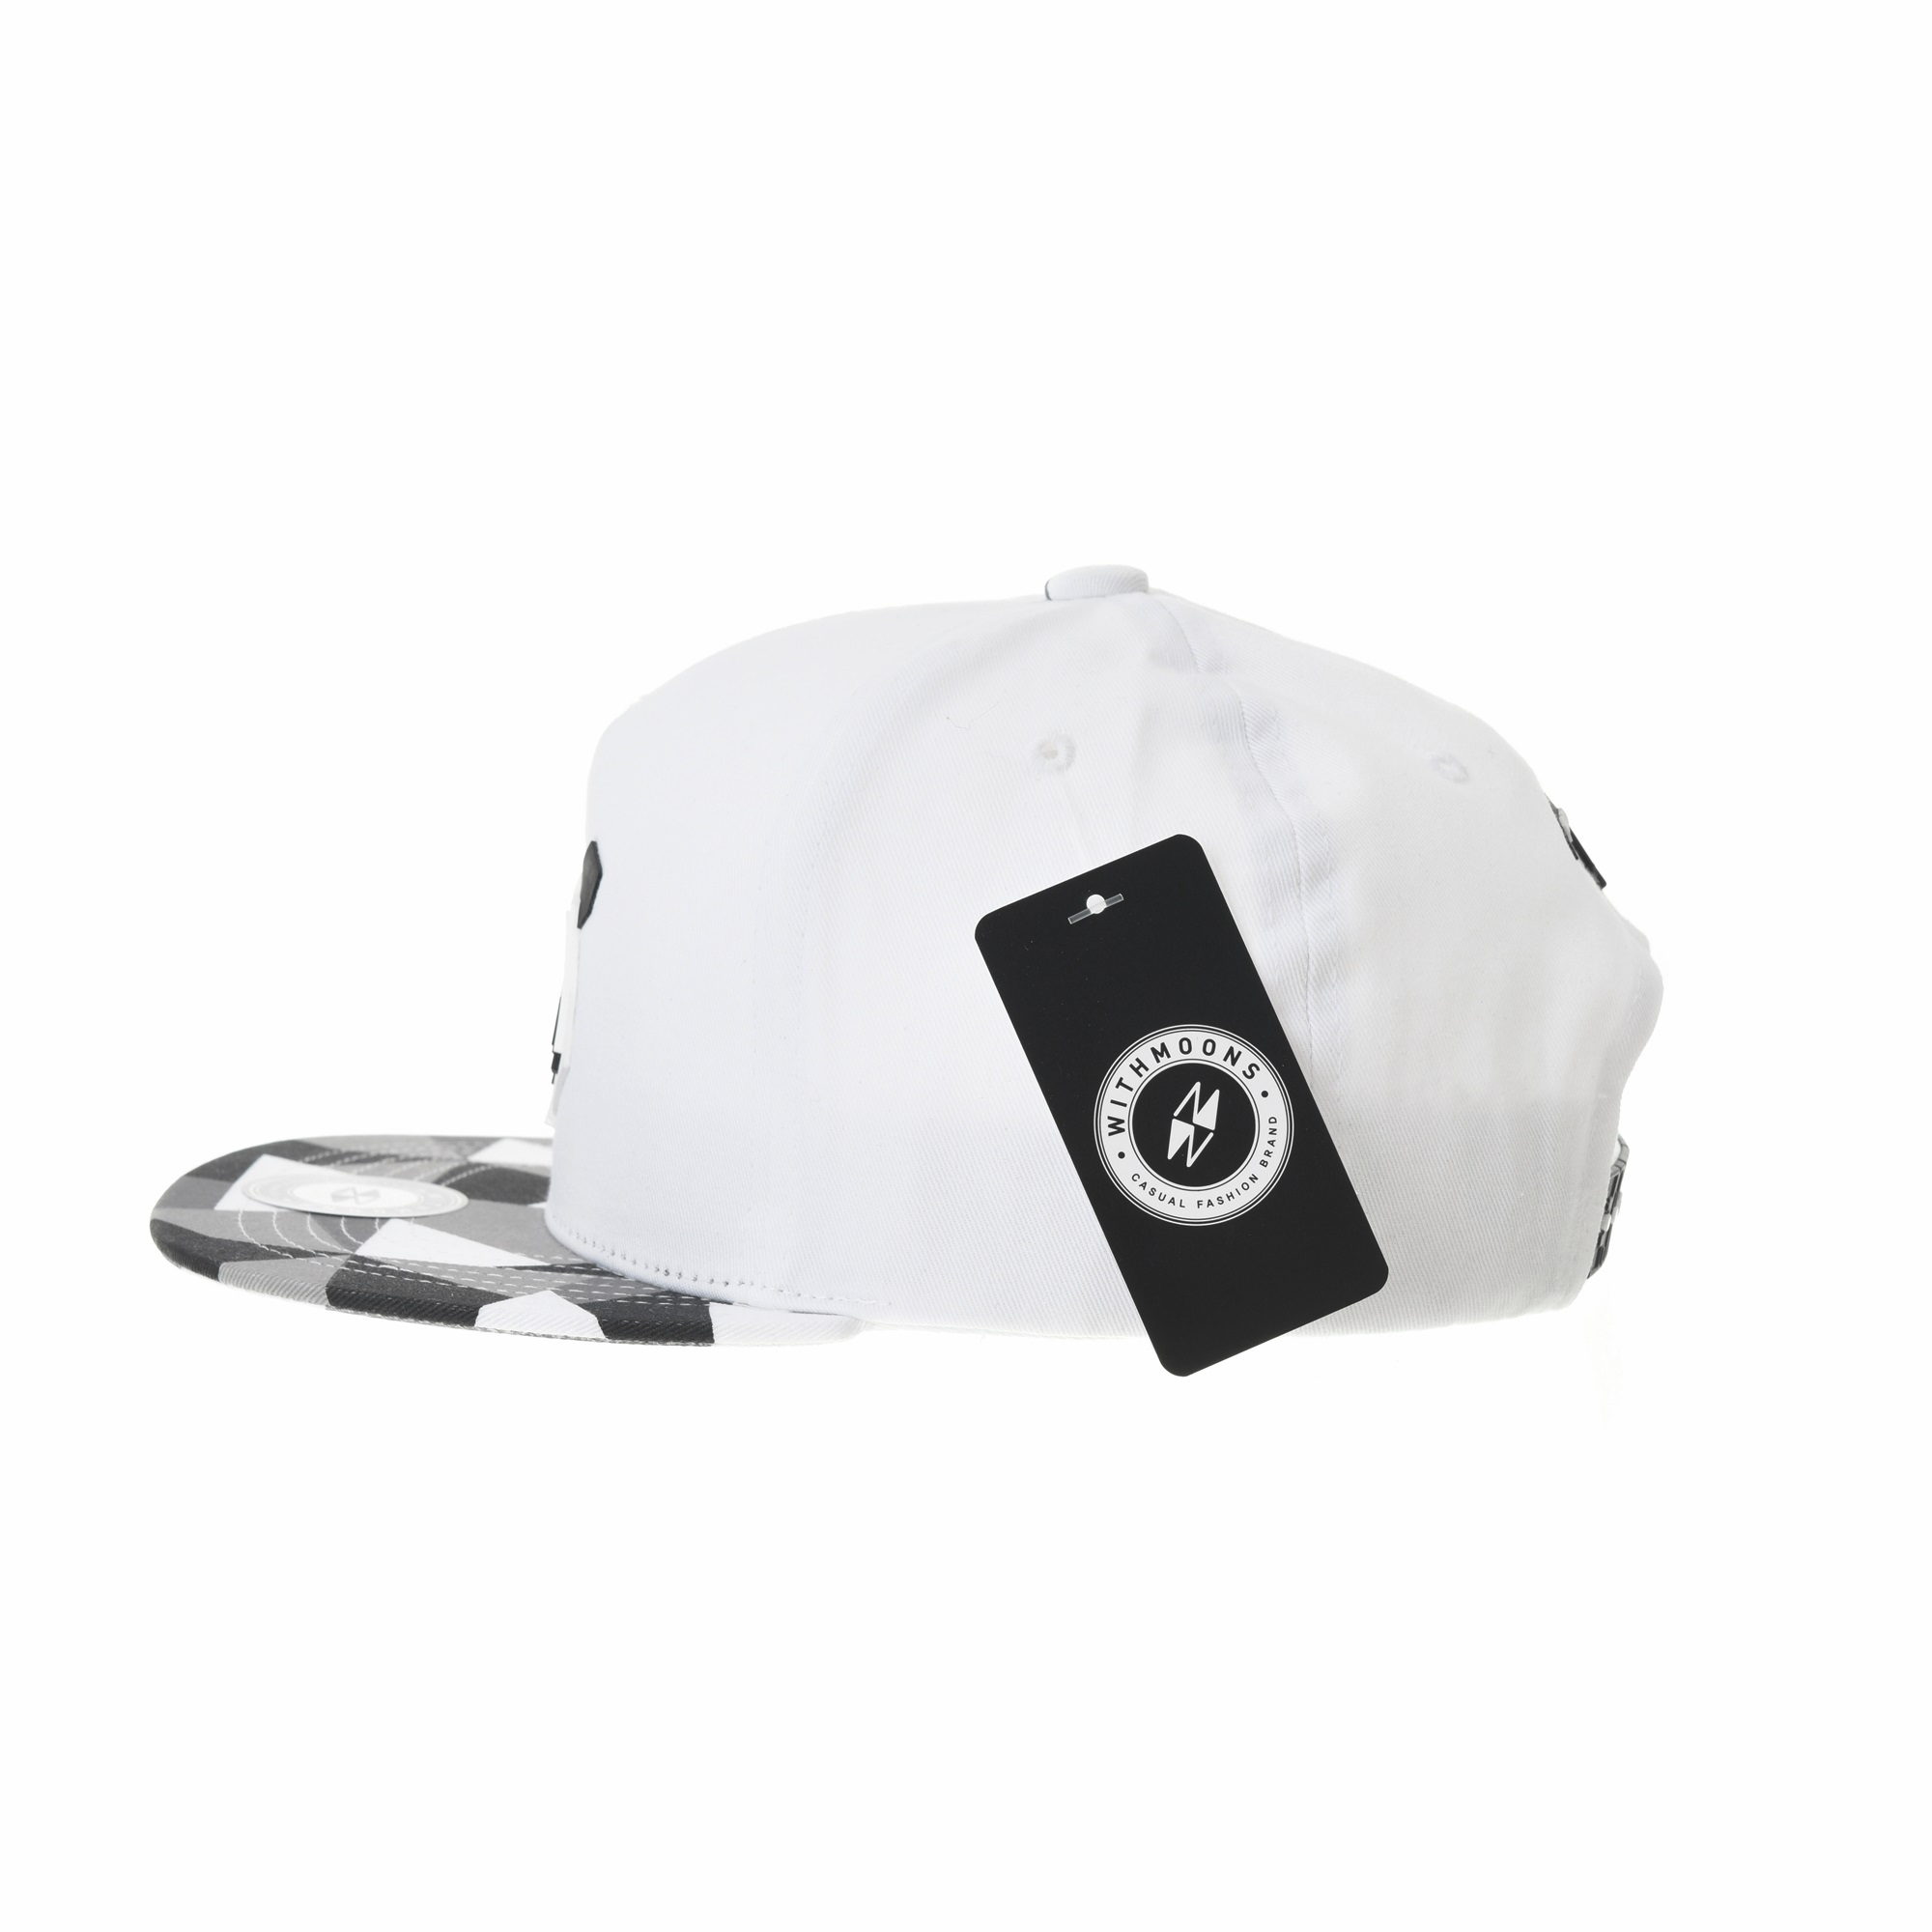 046529cae5d WITHMOONS Snapback Hat Panda Bear Paper Fold Patch Geometry Pattern Flat  Brim Cotton Baseball Cap TR2935 (Grey) - Walmart.com